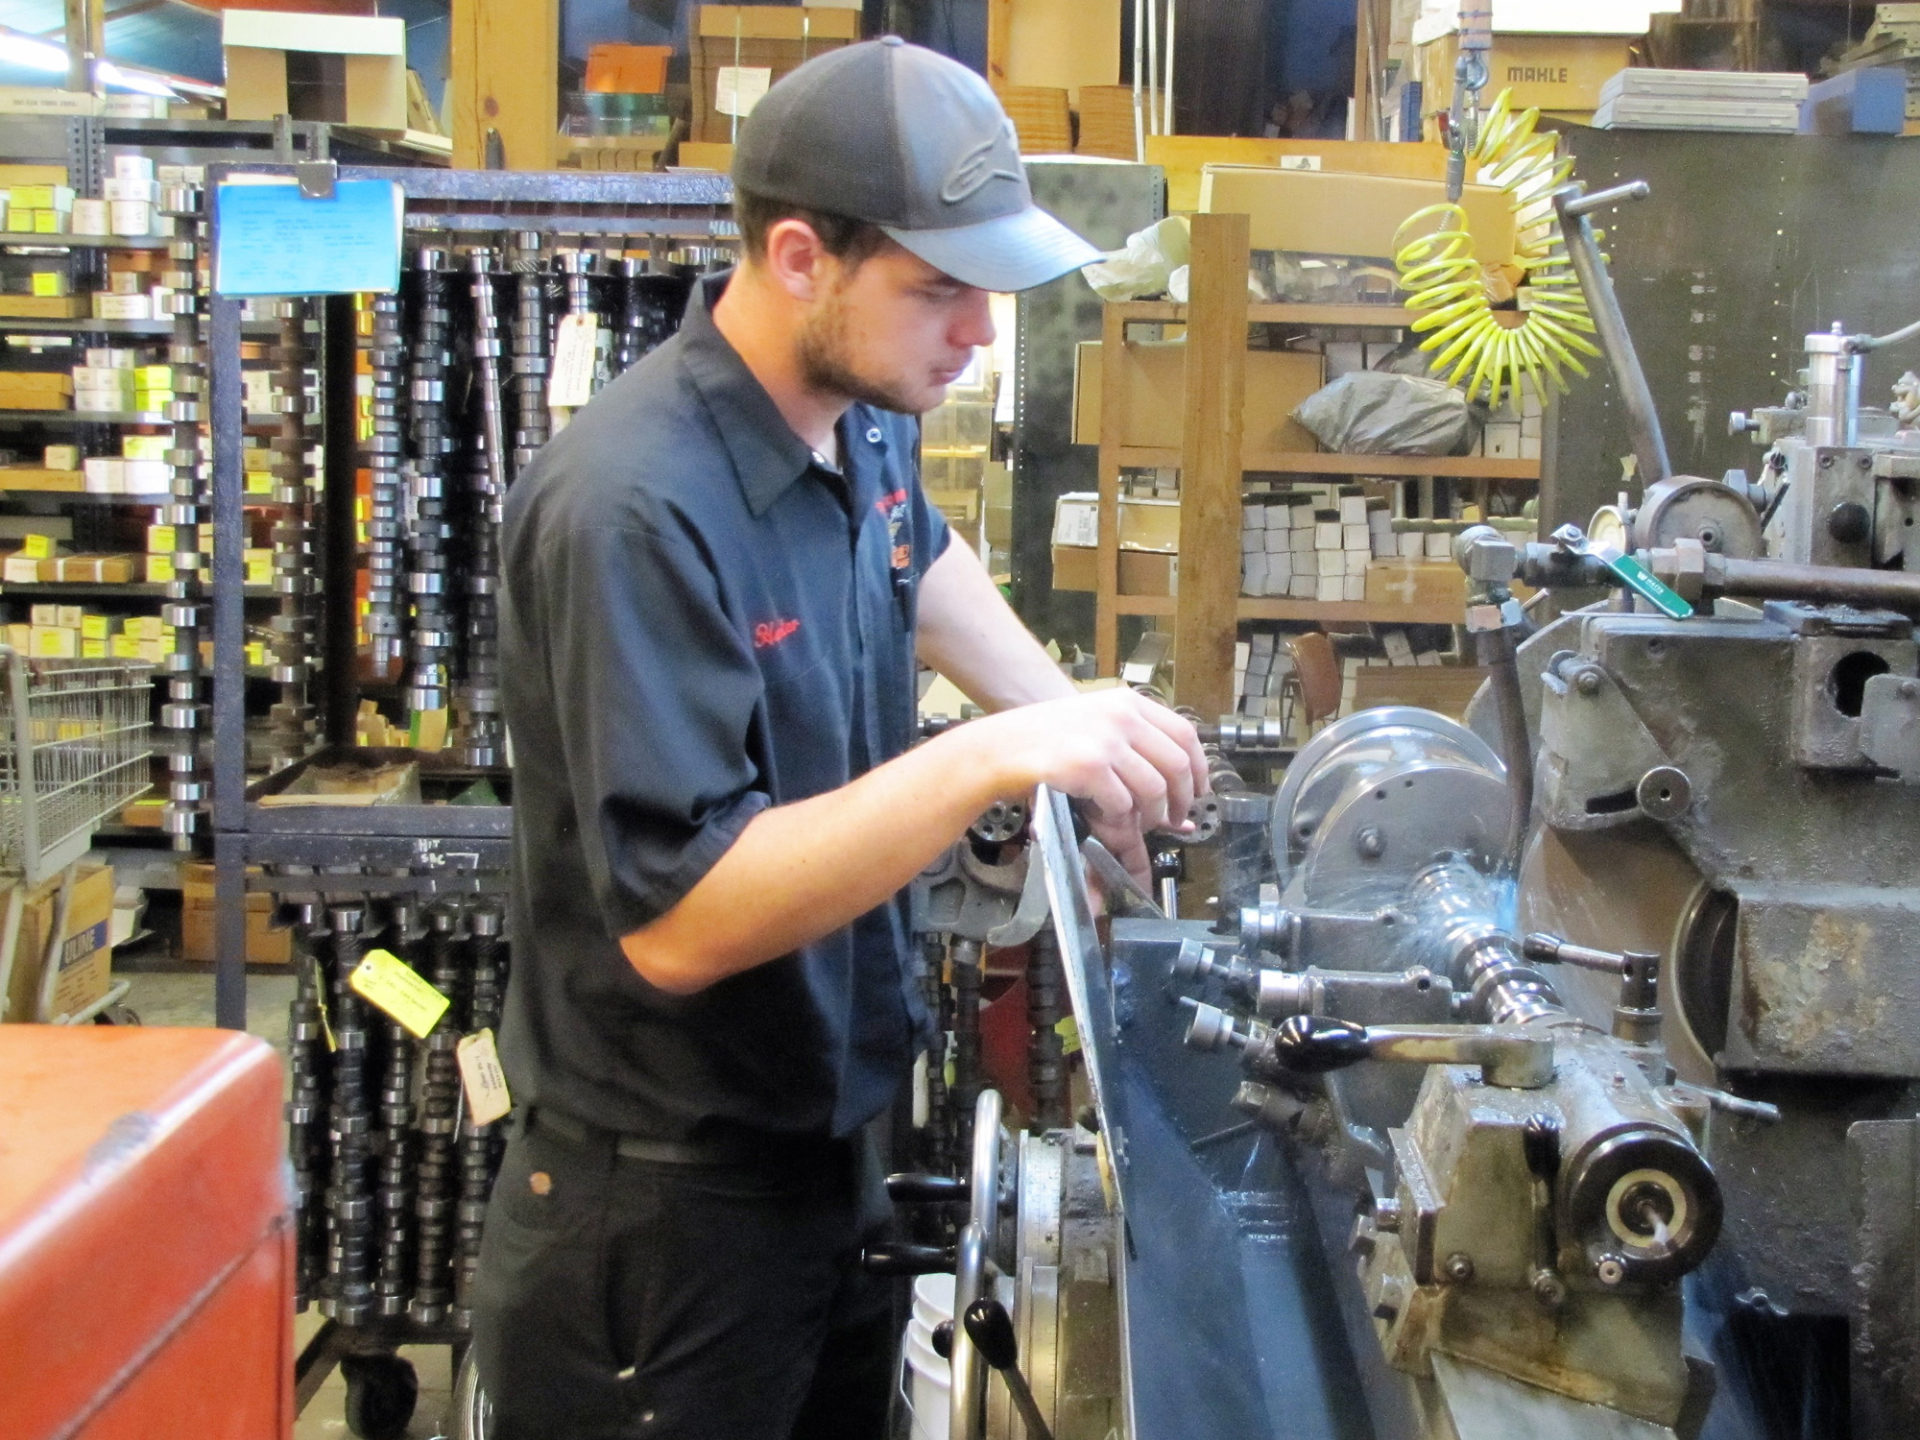 Asheville Engine does all of the proper machining in our Powerstroke engines for sale